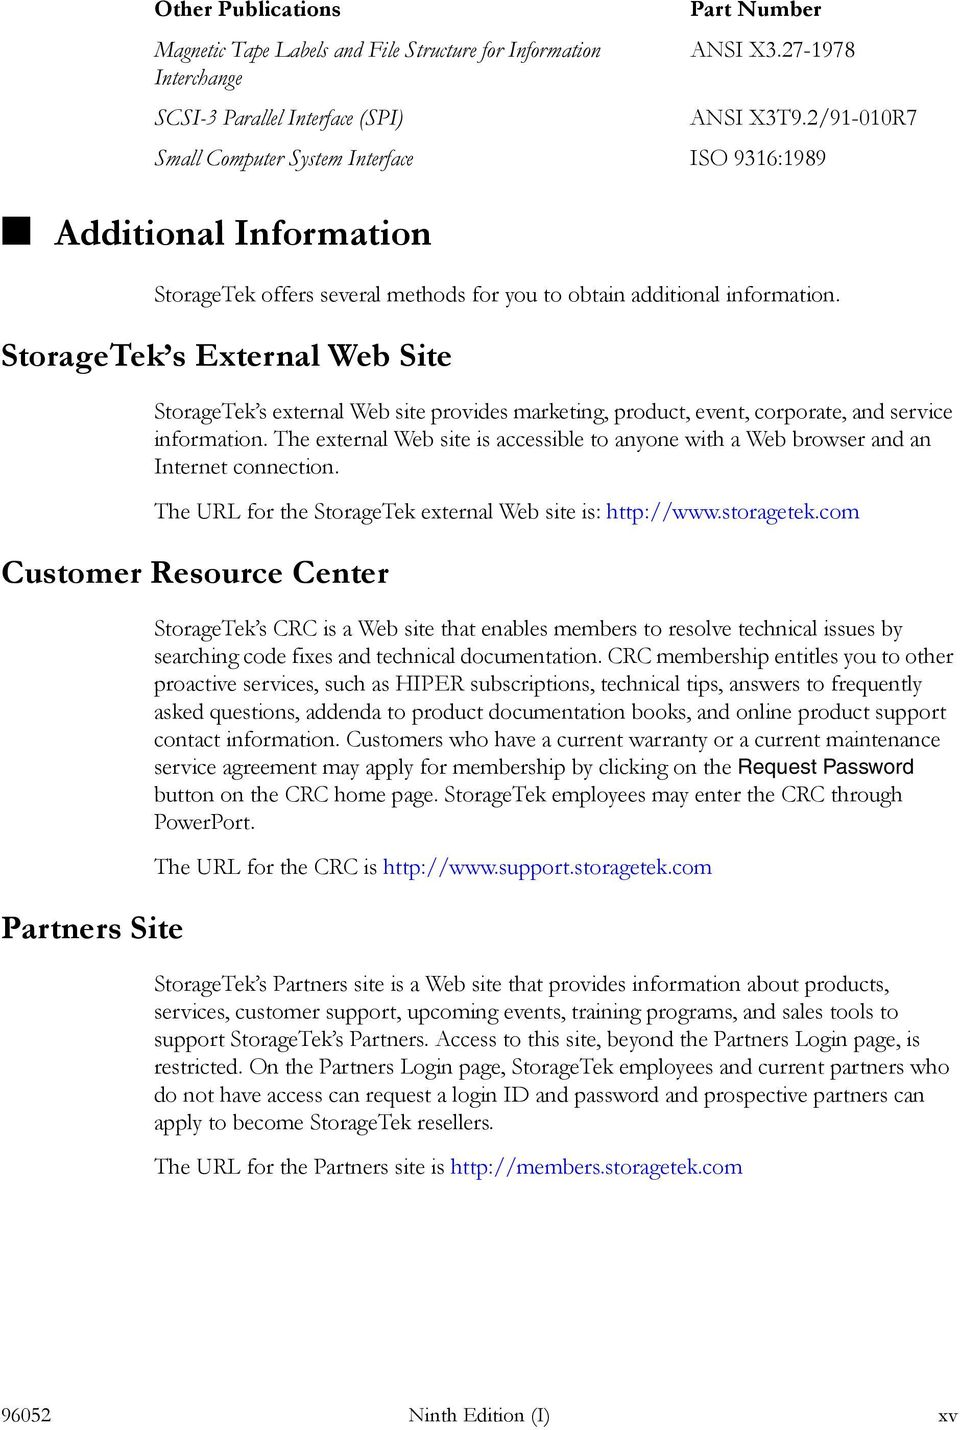 The external Web site is accessible to anyone with a Web browser and an Internet connection. The URL for the StorageTek external Web site is: http://www.storagetek.